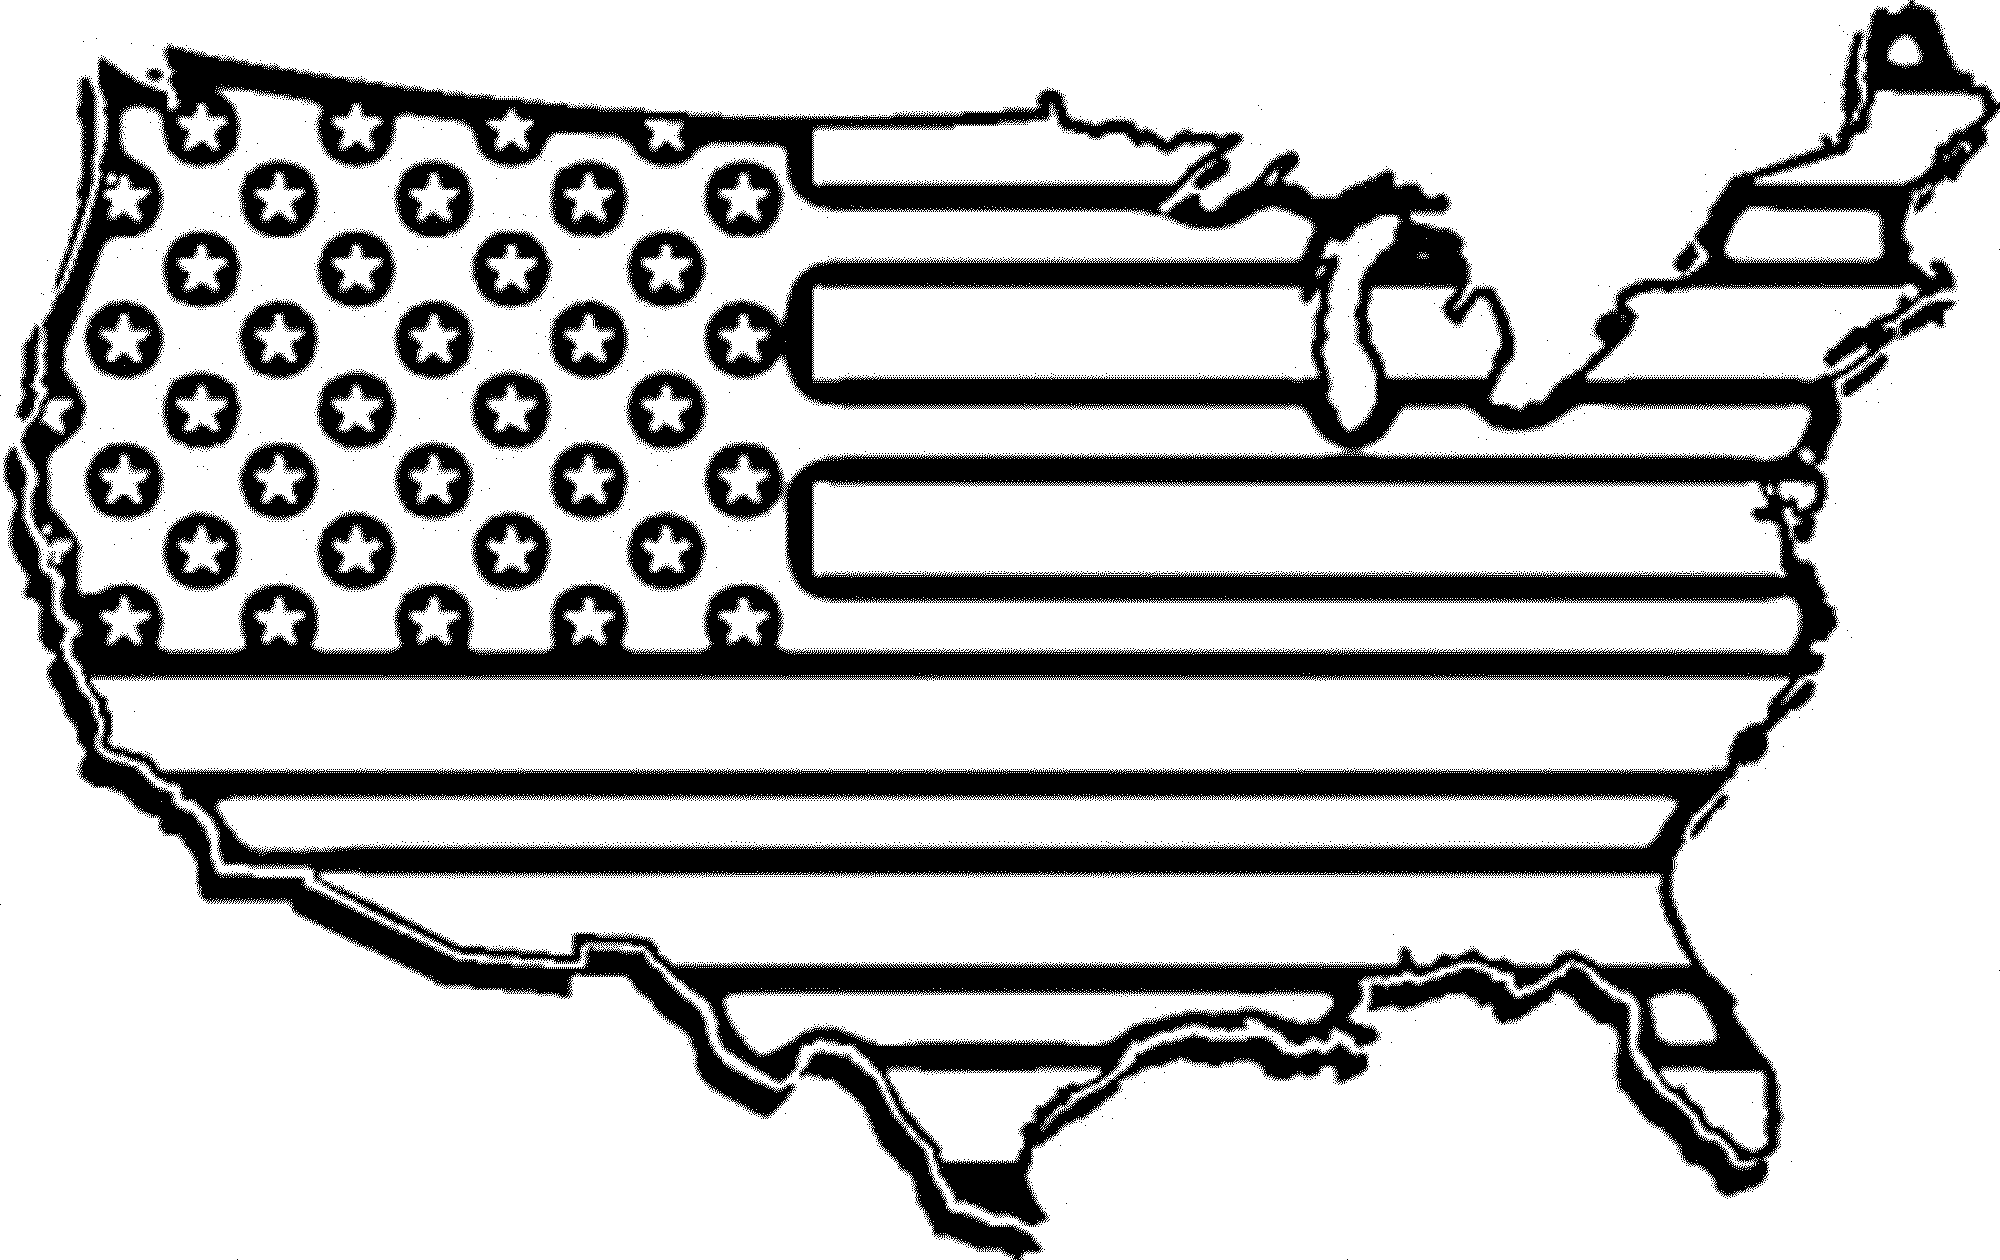 2000x1260 American Flag Clip Art Black And White Cliparts